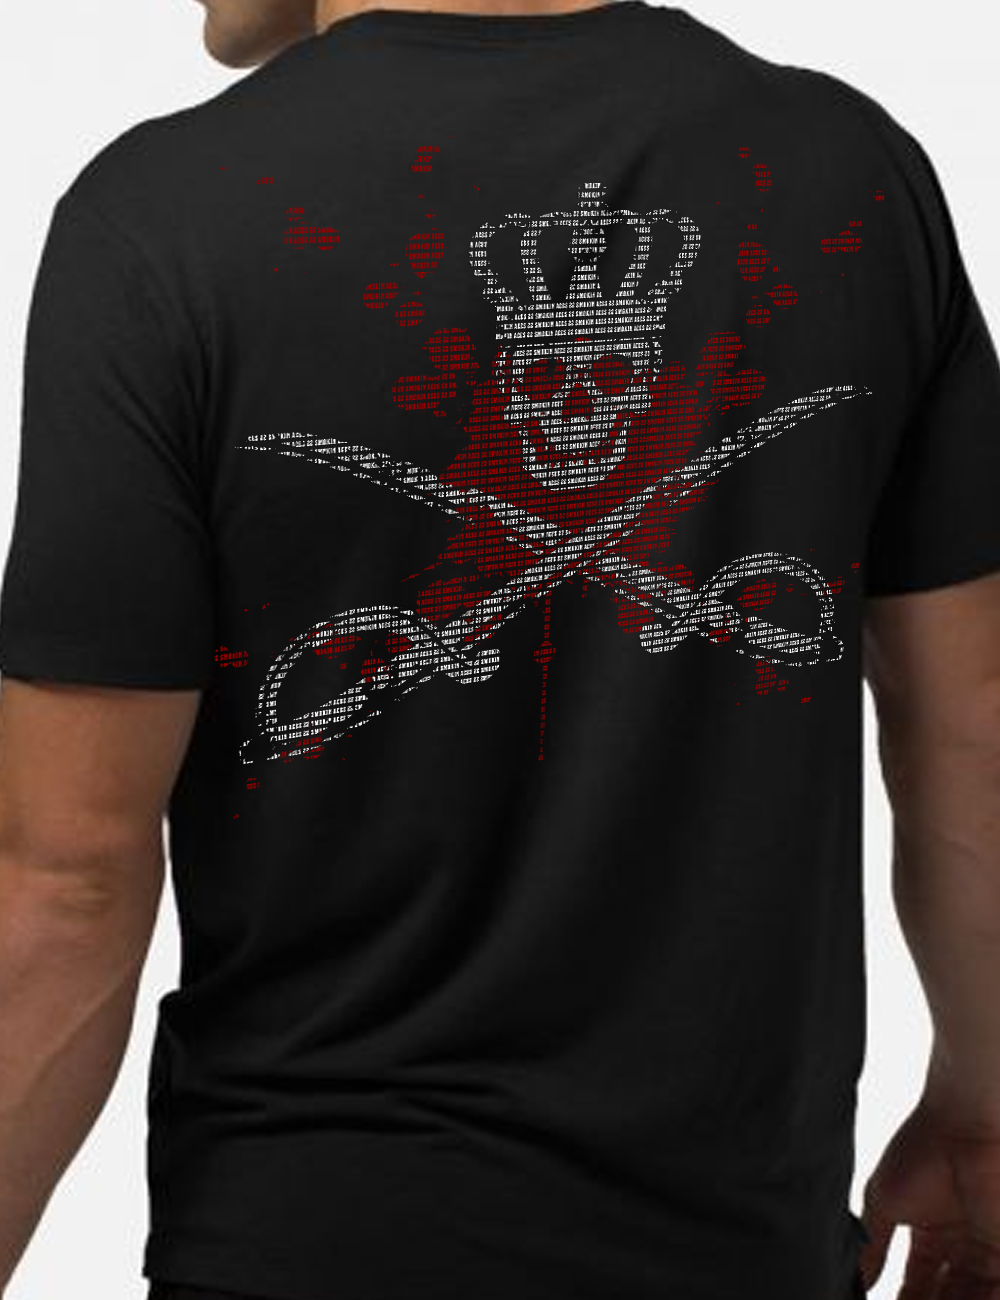 22 Smokin AceS - Crossed Sabre Team Shirt